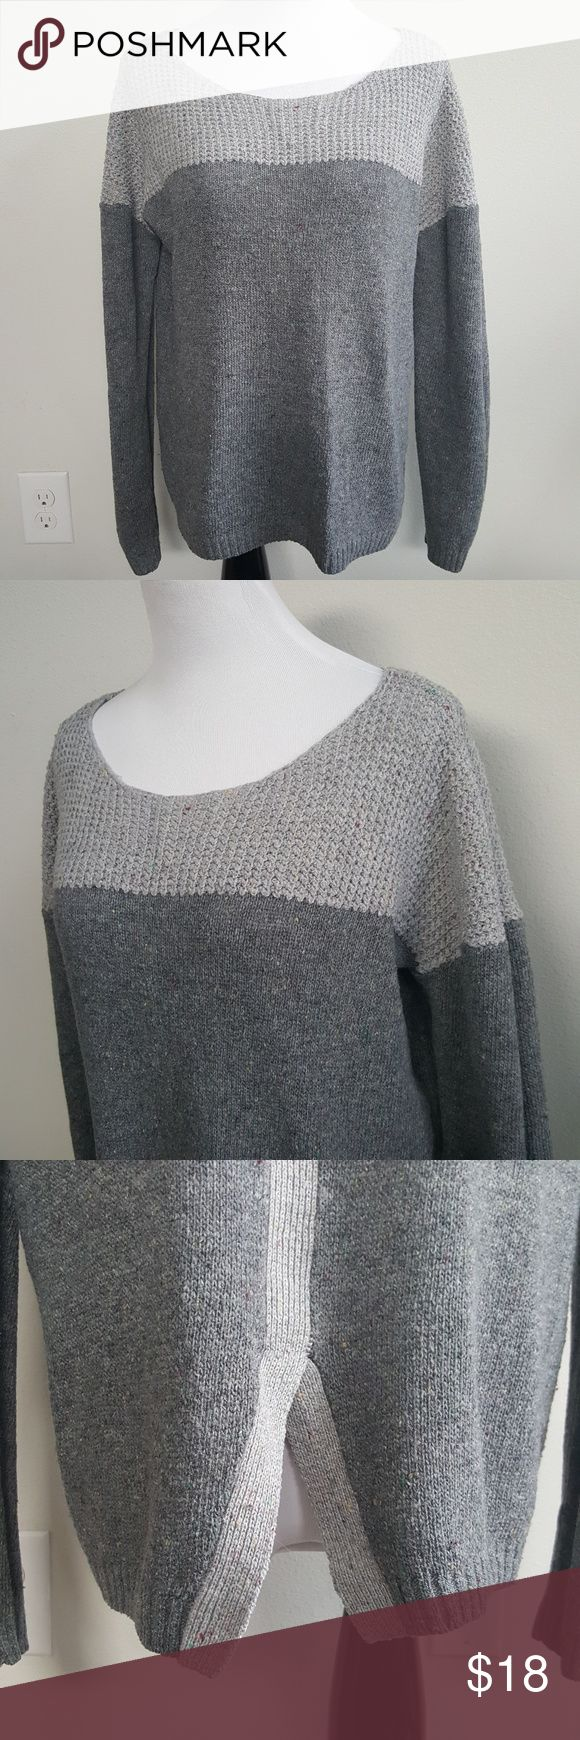 Olivia Sky Gray Colorblock Scoop Neck Sweater Condition: good Brand: Olivia Sky Color: gray Size: medium   🔮 Open to offers 💸 Bundle to save 💰 No trades🚫  ⚡Bundle 2 or more items under $15 and I'll send you an offer with a 30% discount (at least!)⚡ Olivia Sky Sweaters Crew & Scoop Necks